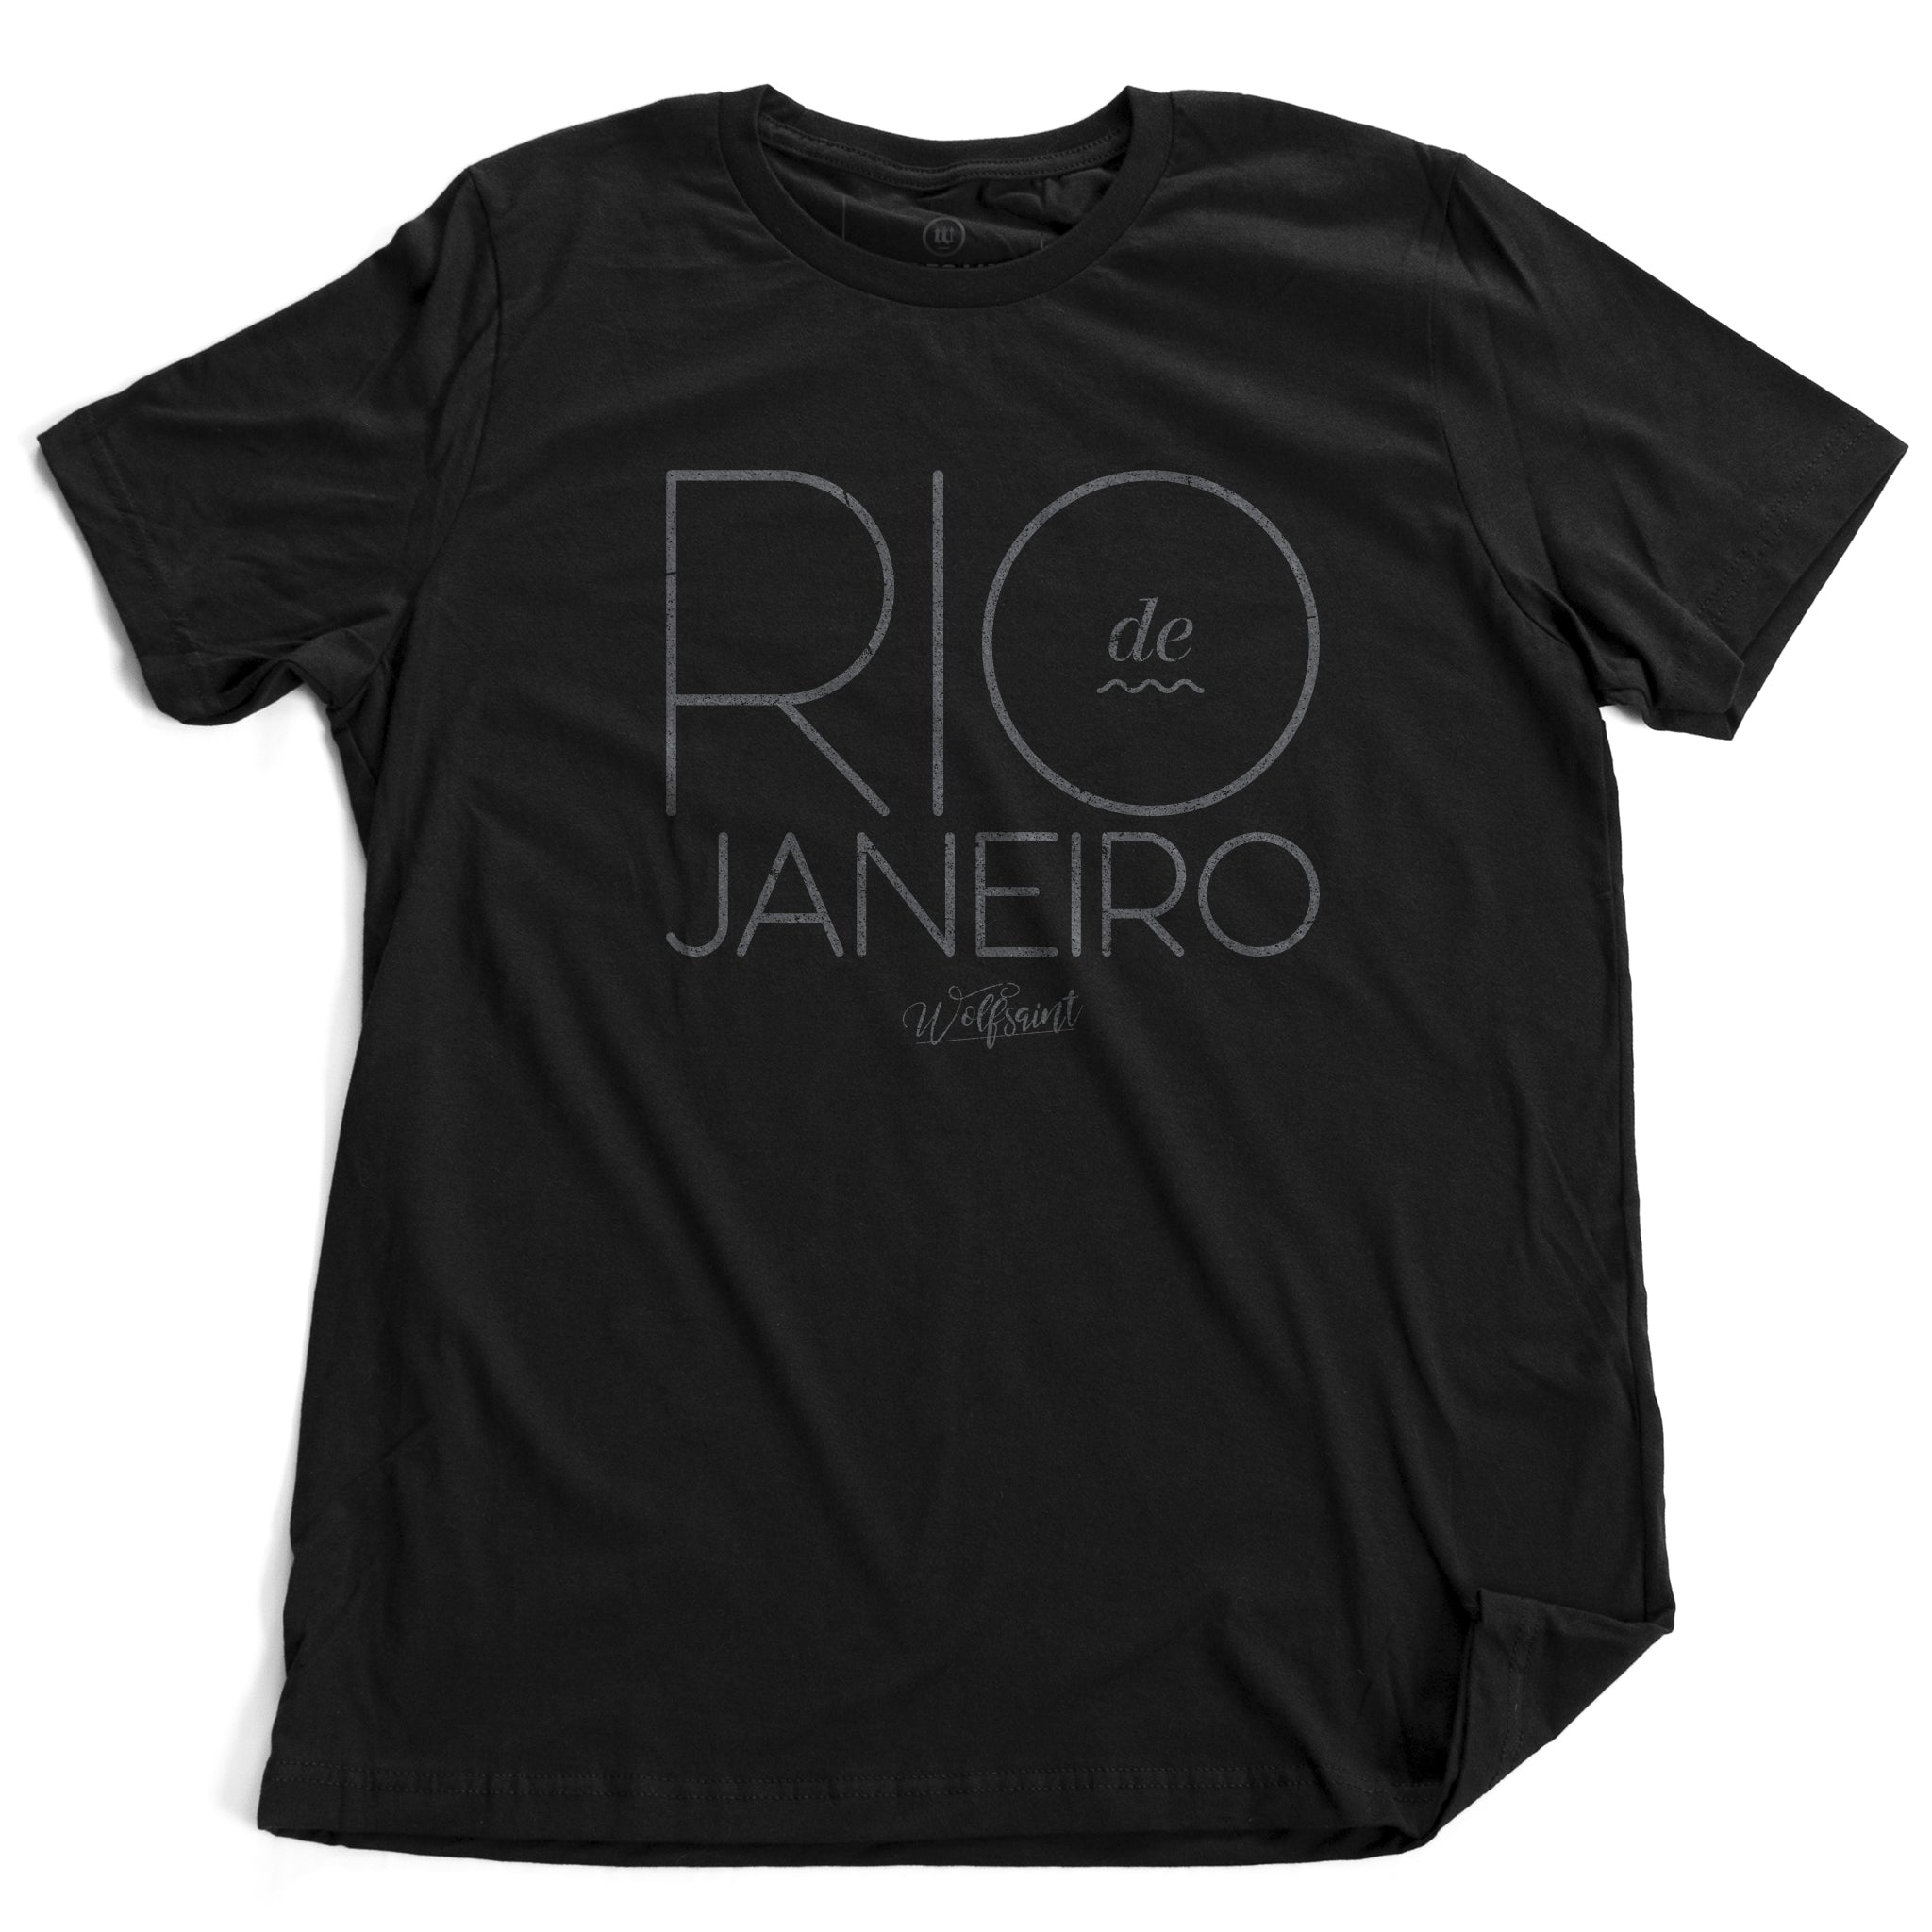 An elegant, retro design fashion t-shirt with RIO DE JANEIRO in large light gray typography in a thin font on Classic Black cotton. The Wolfsaint script logo is below. From Wolfsaint.net